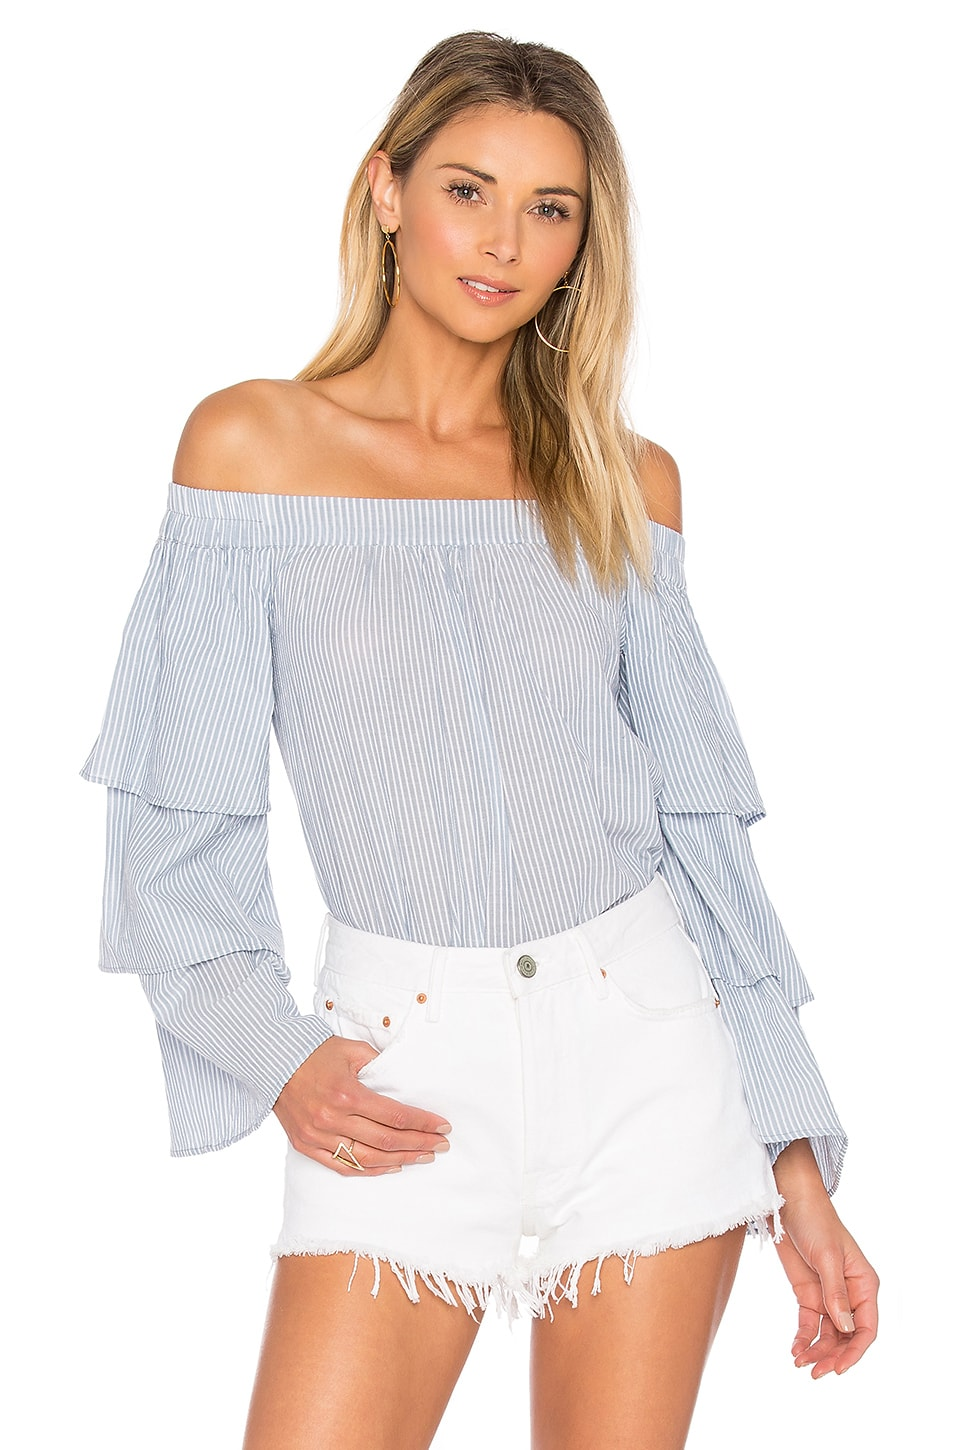 L'Academie x REVOLVE The Layered Off Shoulder in Blue Ladder Stripe